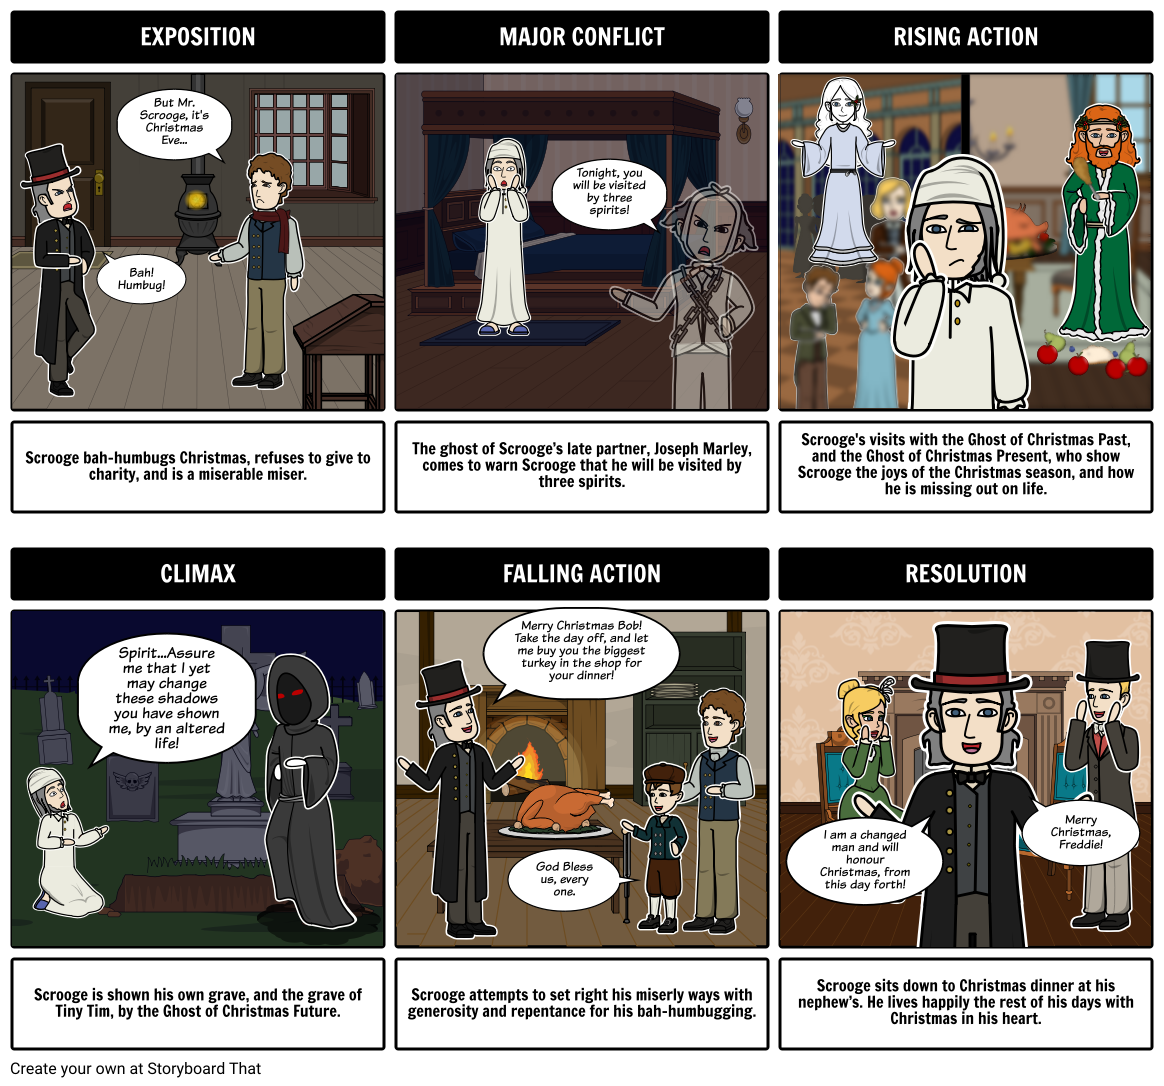 1000 Images About A Christmas Carol On Pinterest: A Christmas Carol Plot Diagram Storyboard By Nathanael